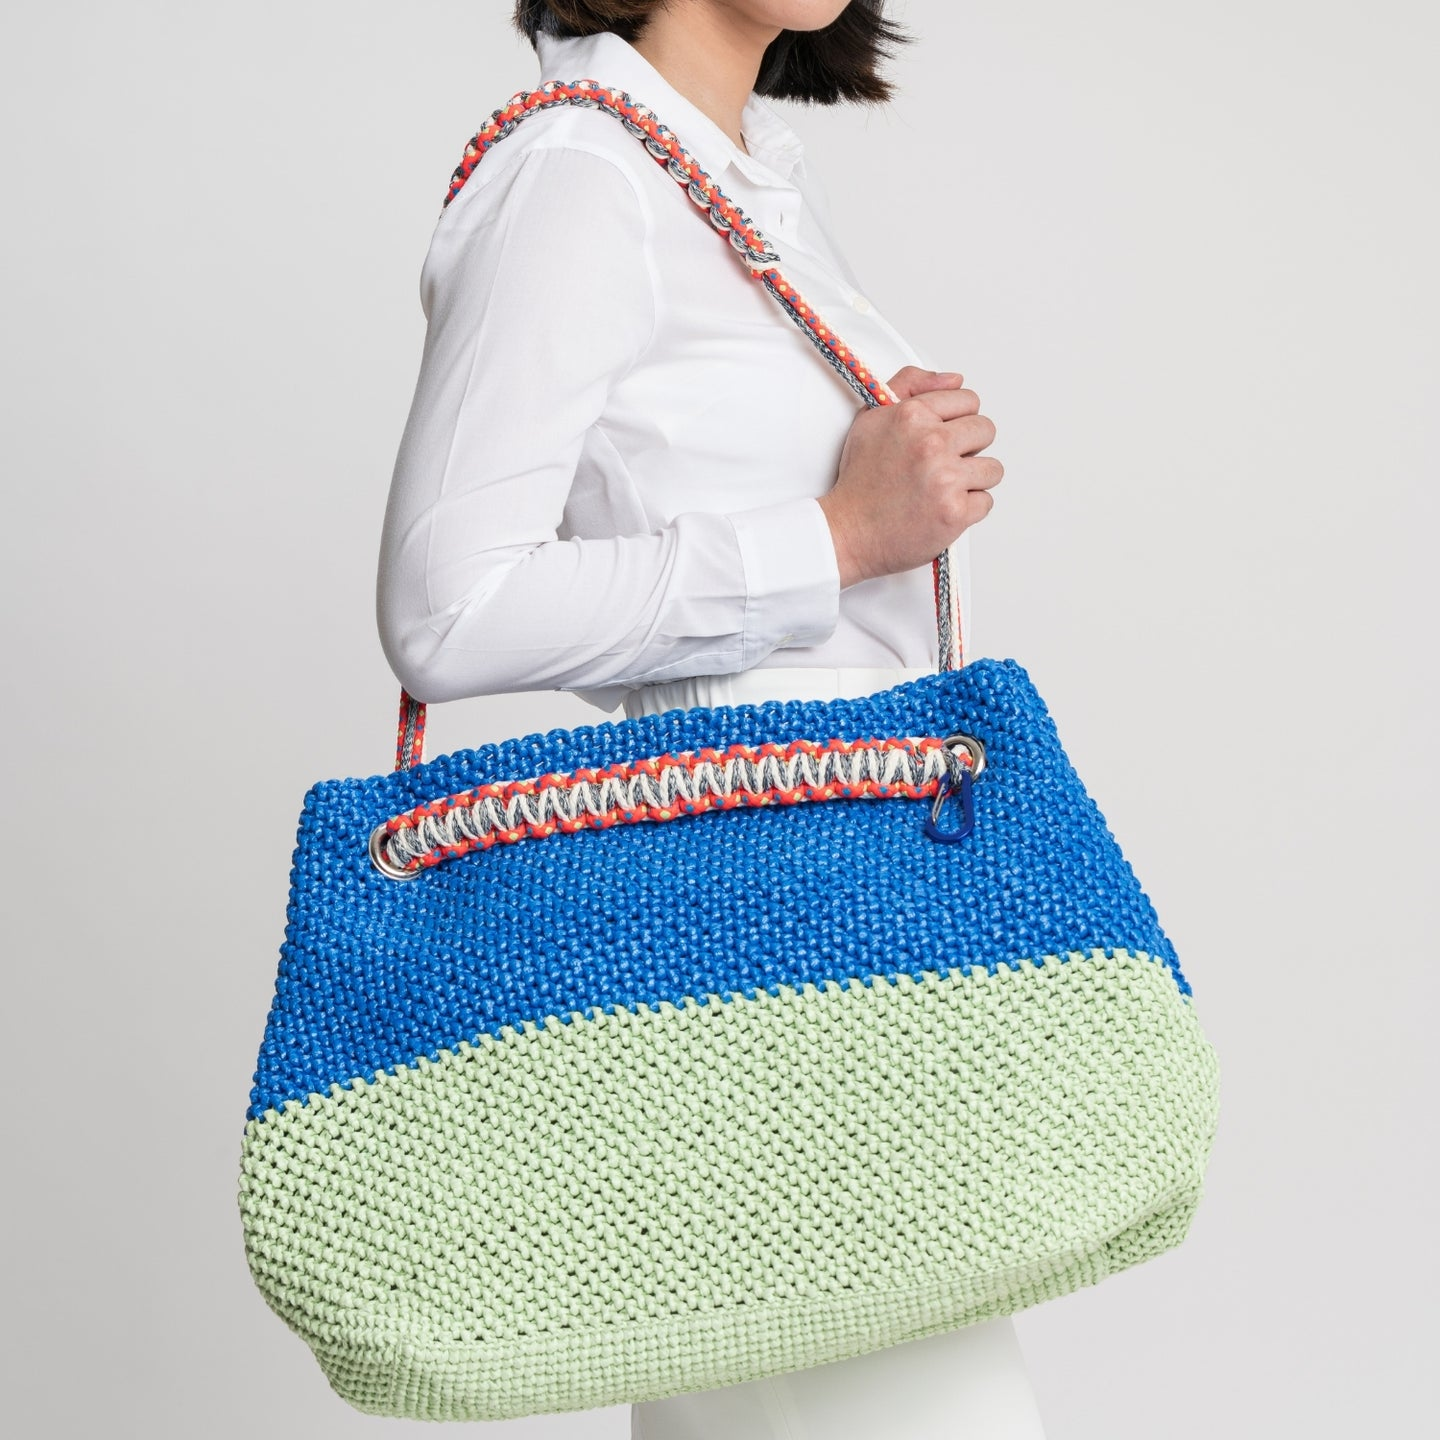 Favela Beach Oversize Bag Tote